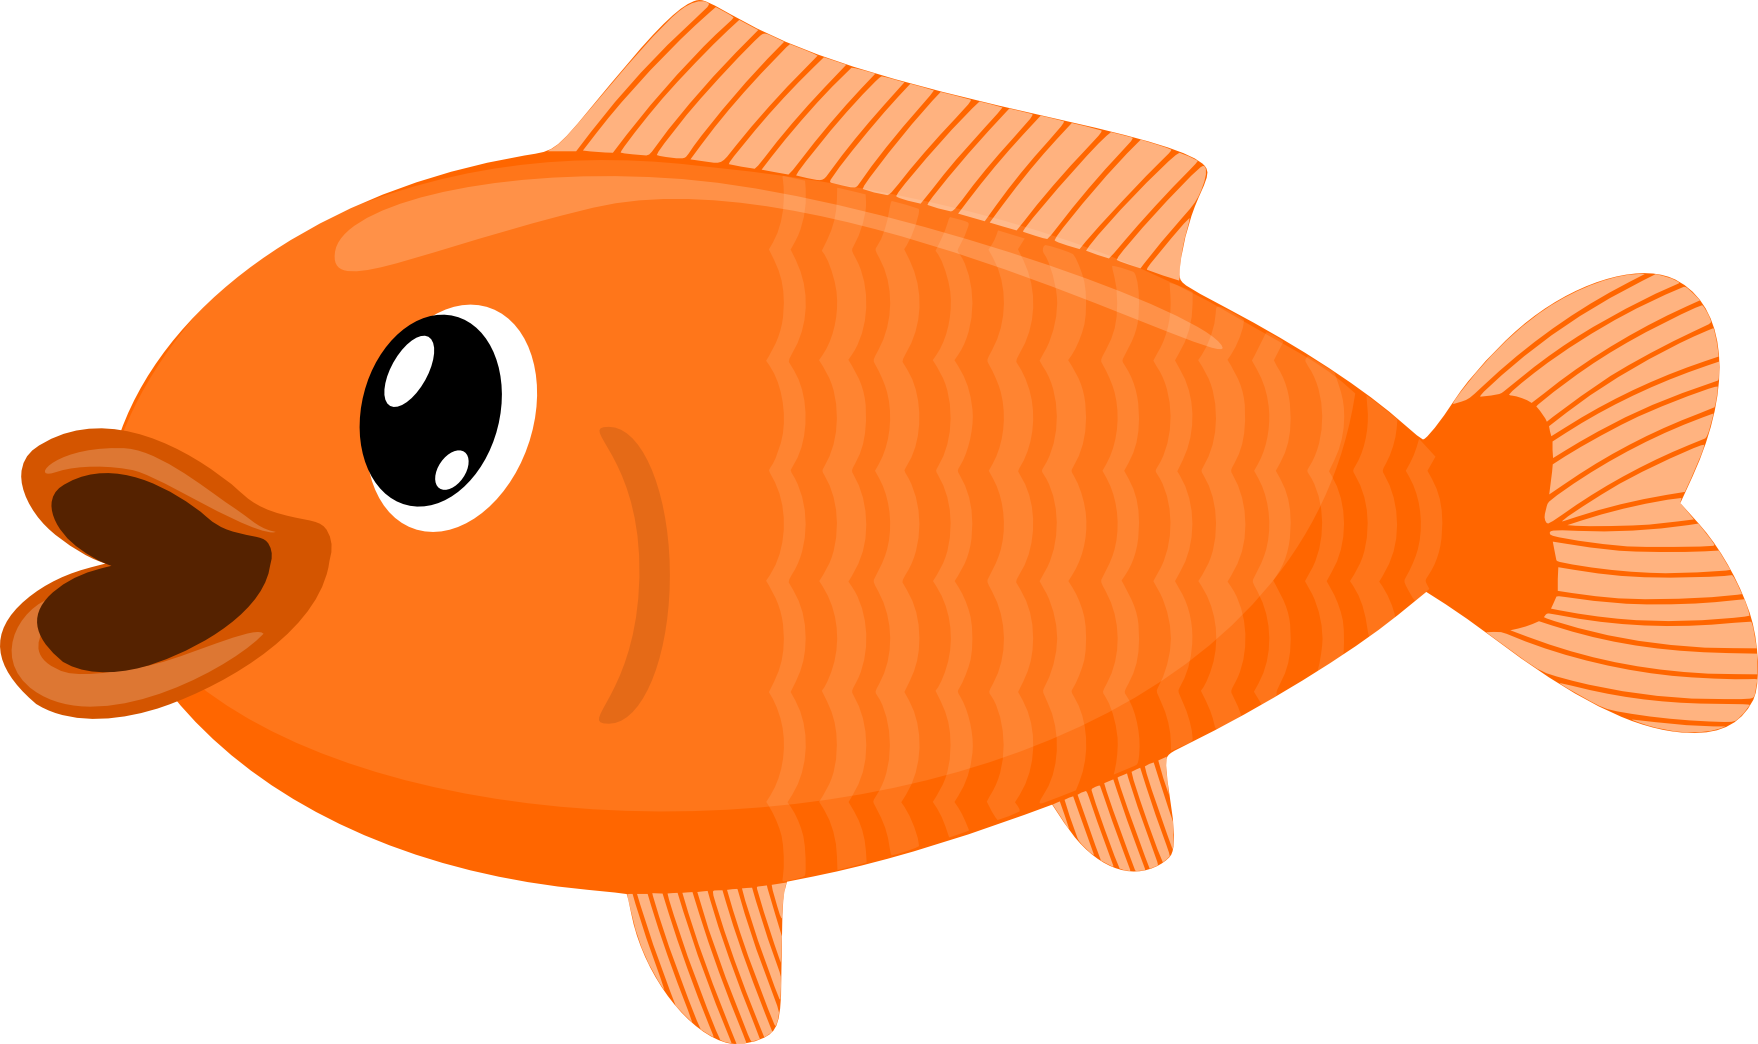 Cute fish clipart png. Koi at getdrawings com